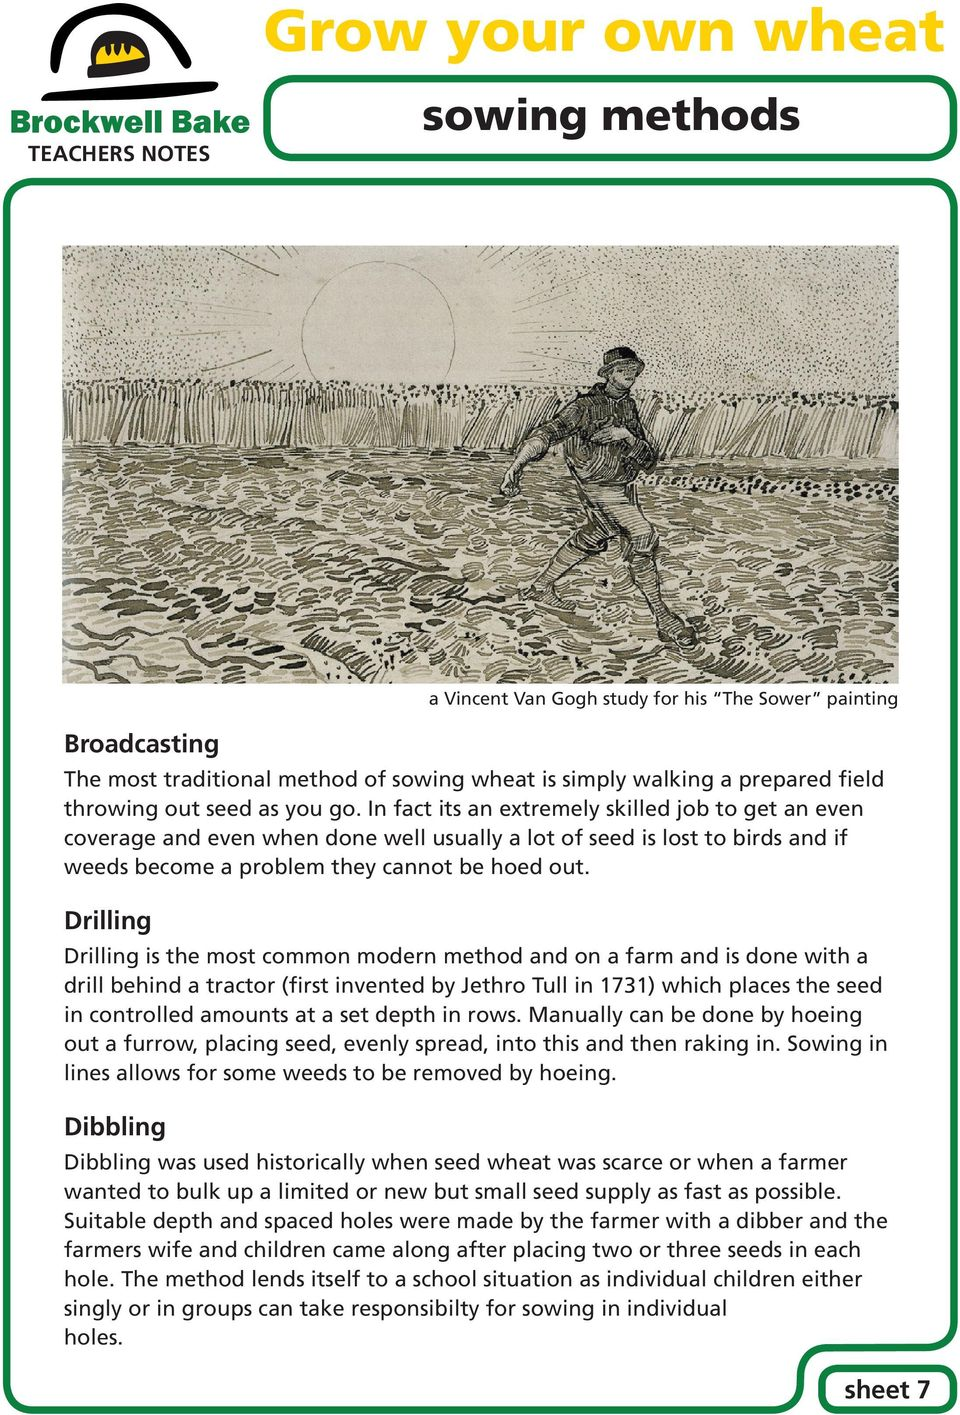 Drilling Drilling is the most common modern method and on a farm and is done with a drill behind a tractor (first invented by Jethro Tull in 1731) which places the seed in controlled amounts at a set